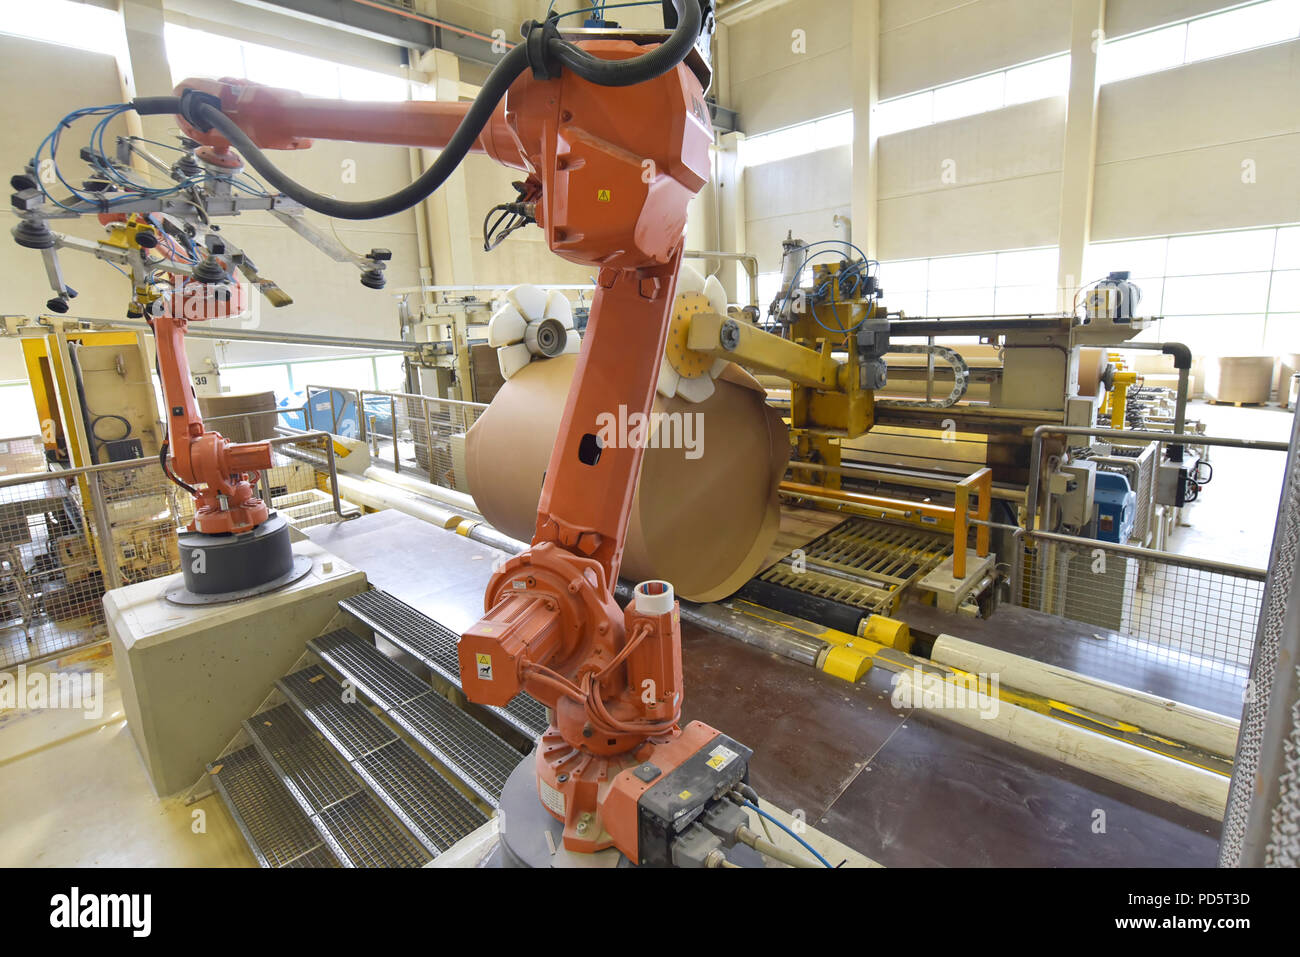 Industrial robot in a paper mill - automation in a modern plant - recycling of waste paper - Stock Image